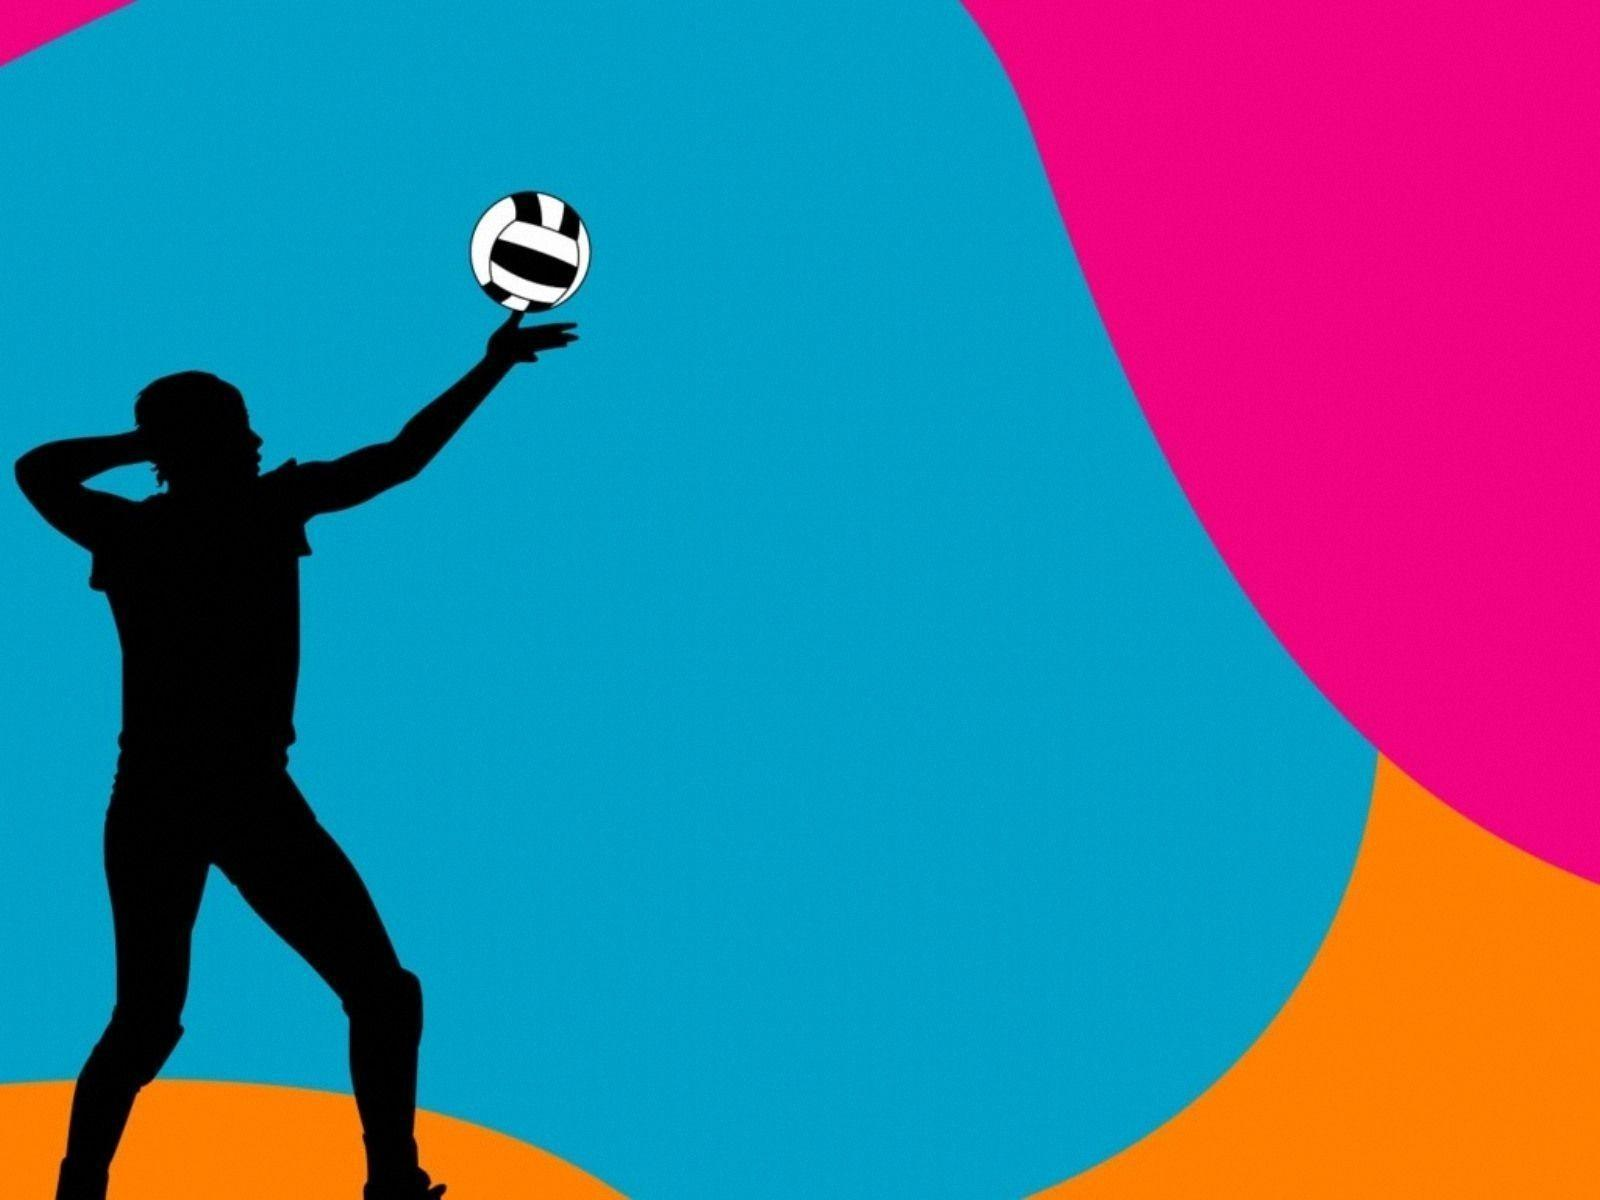 Sport Wallpaper Volleyball: Volleyball Backgrounds